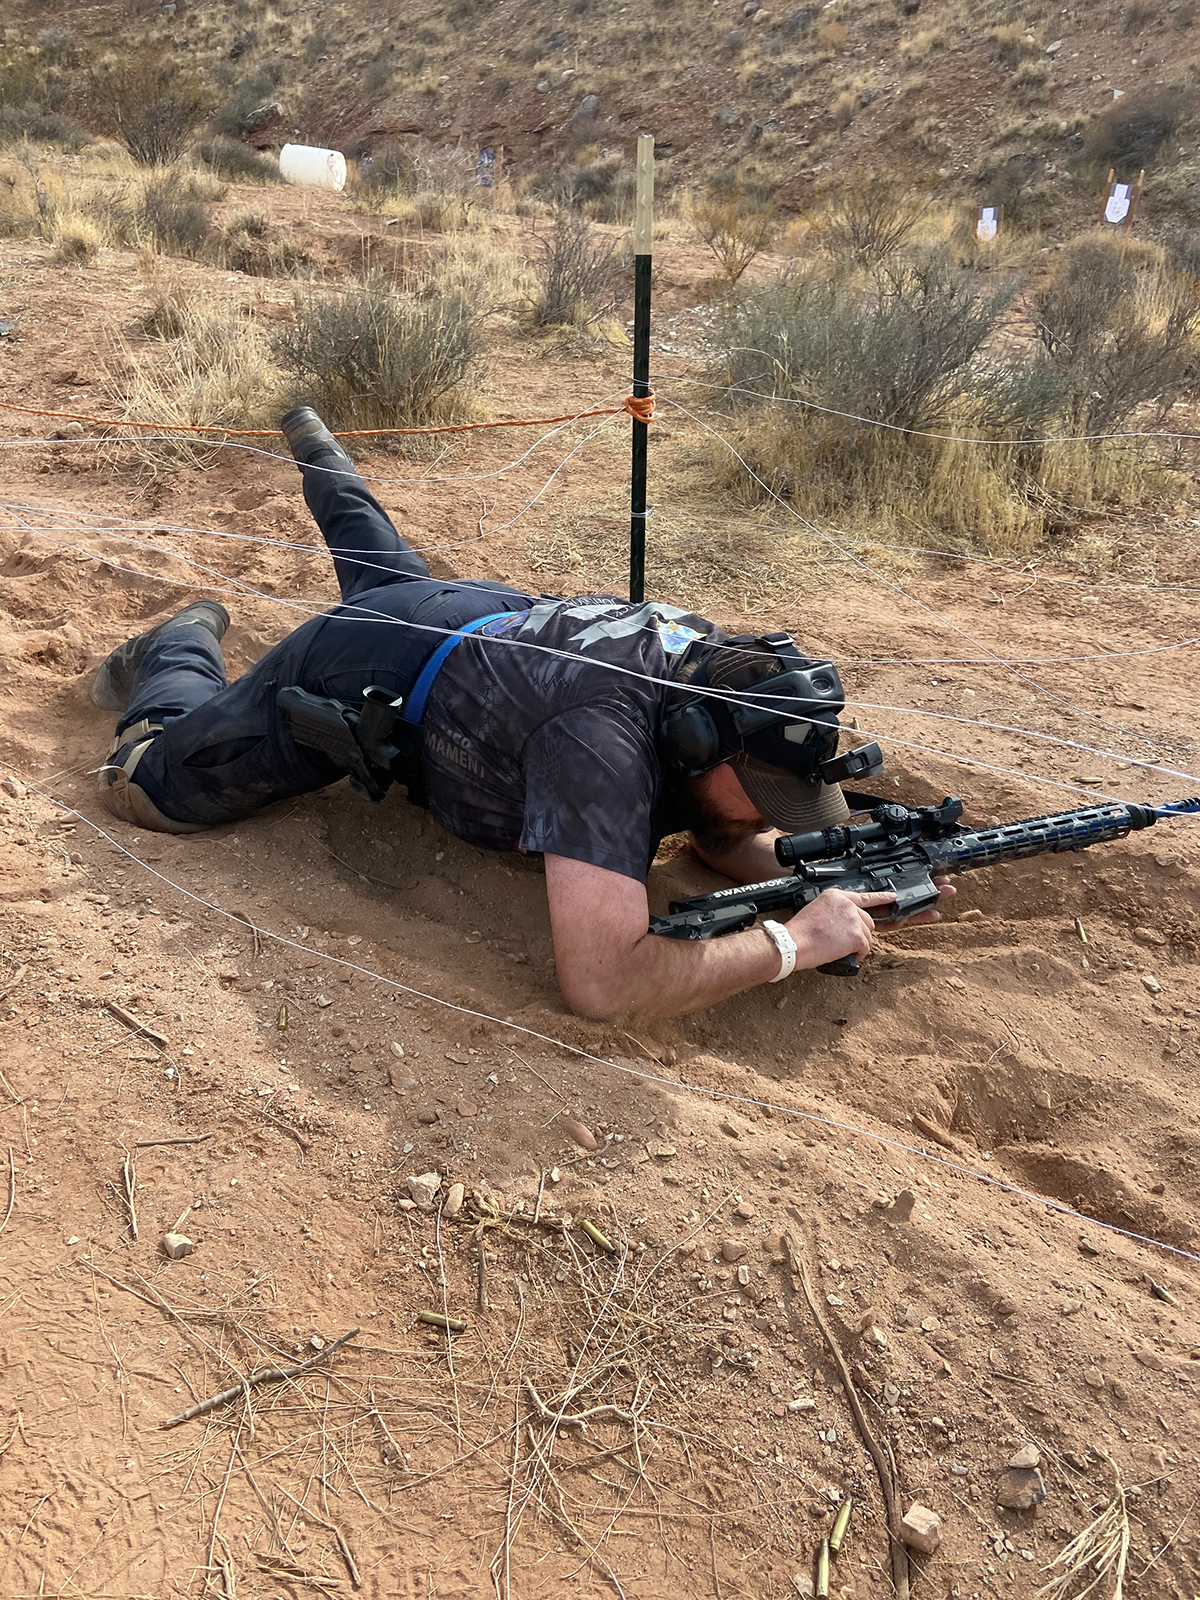 Gillette Police Department Officer, Zachary Parker, army crawls under wires and through dirt to get to his next shooting target. (Photo: Zachary Parker)